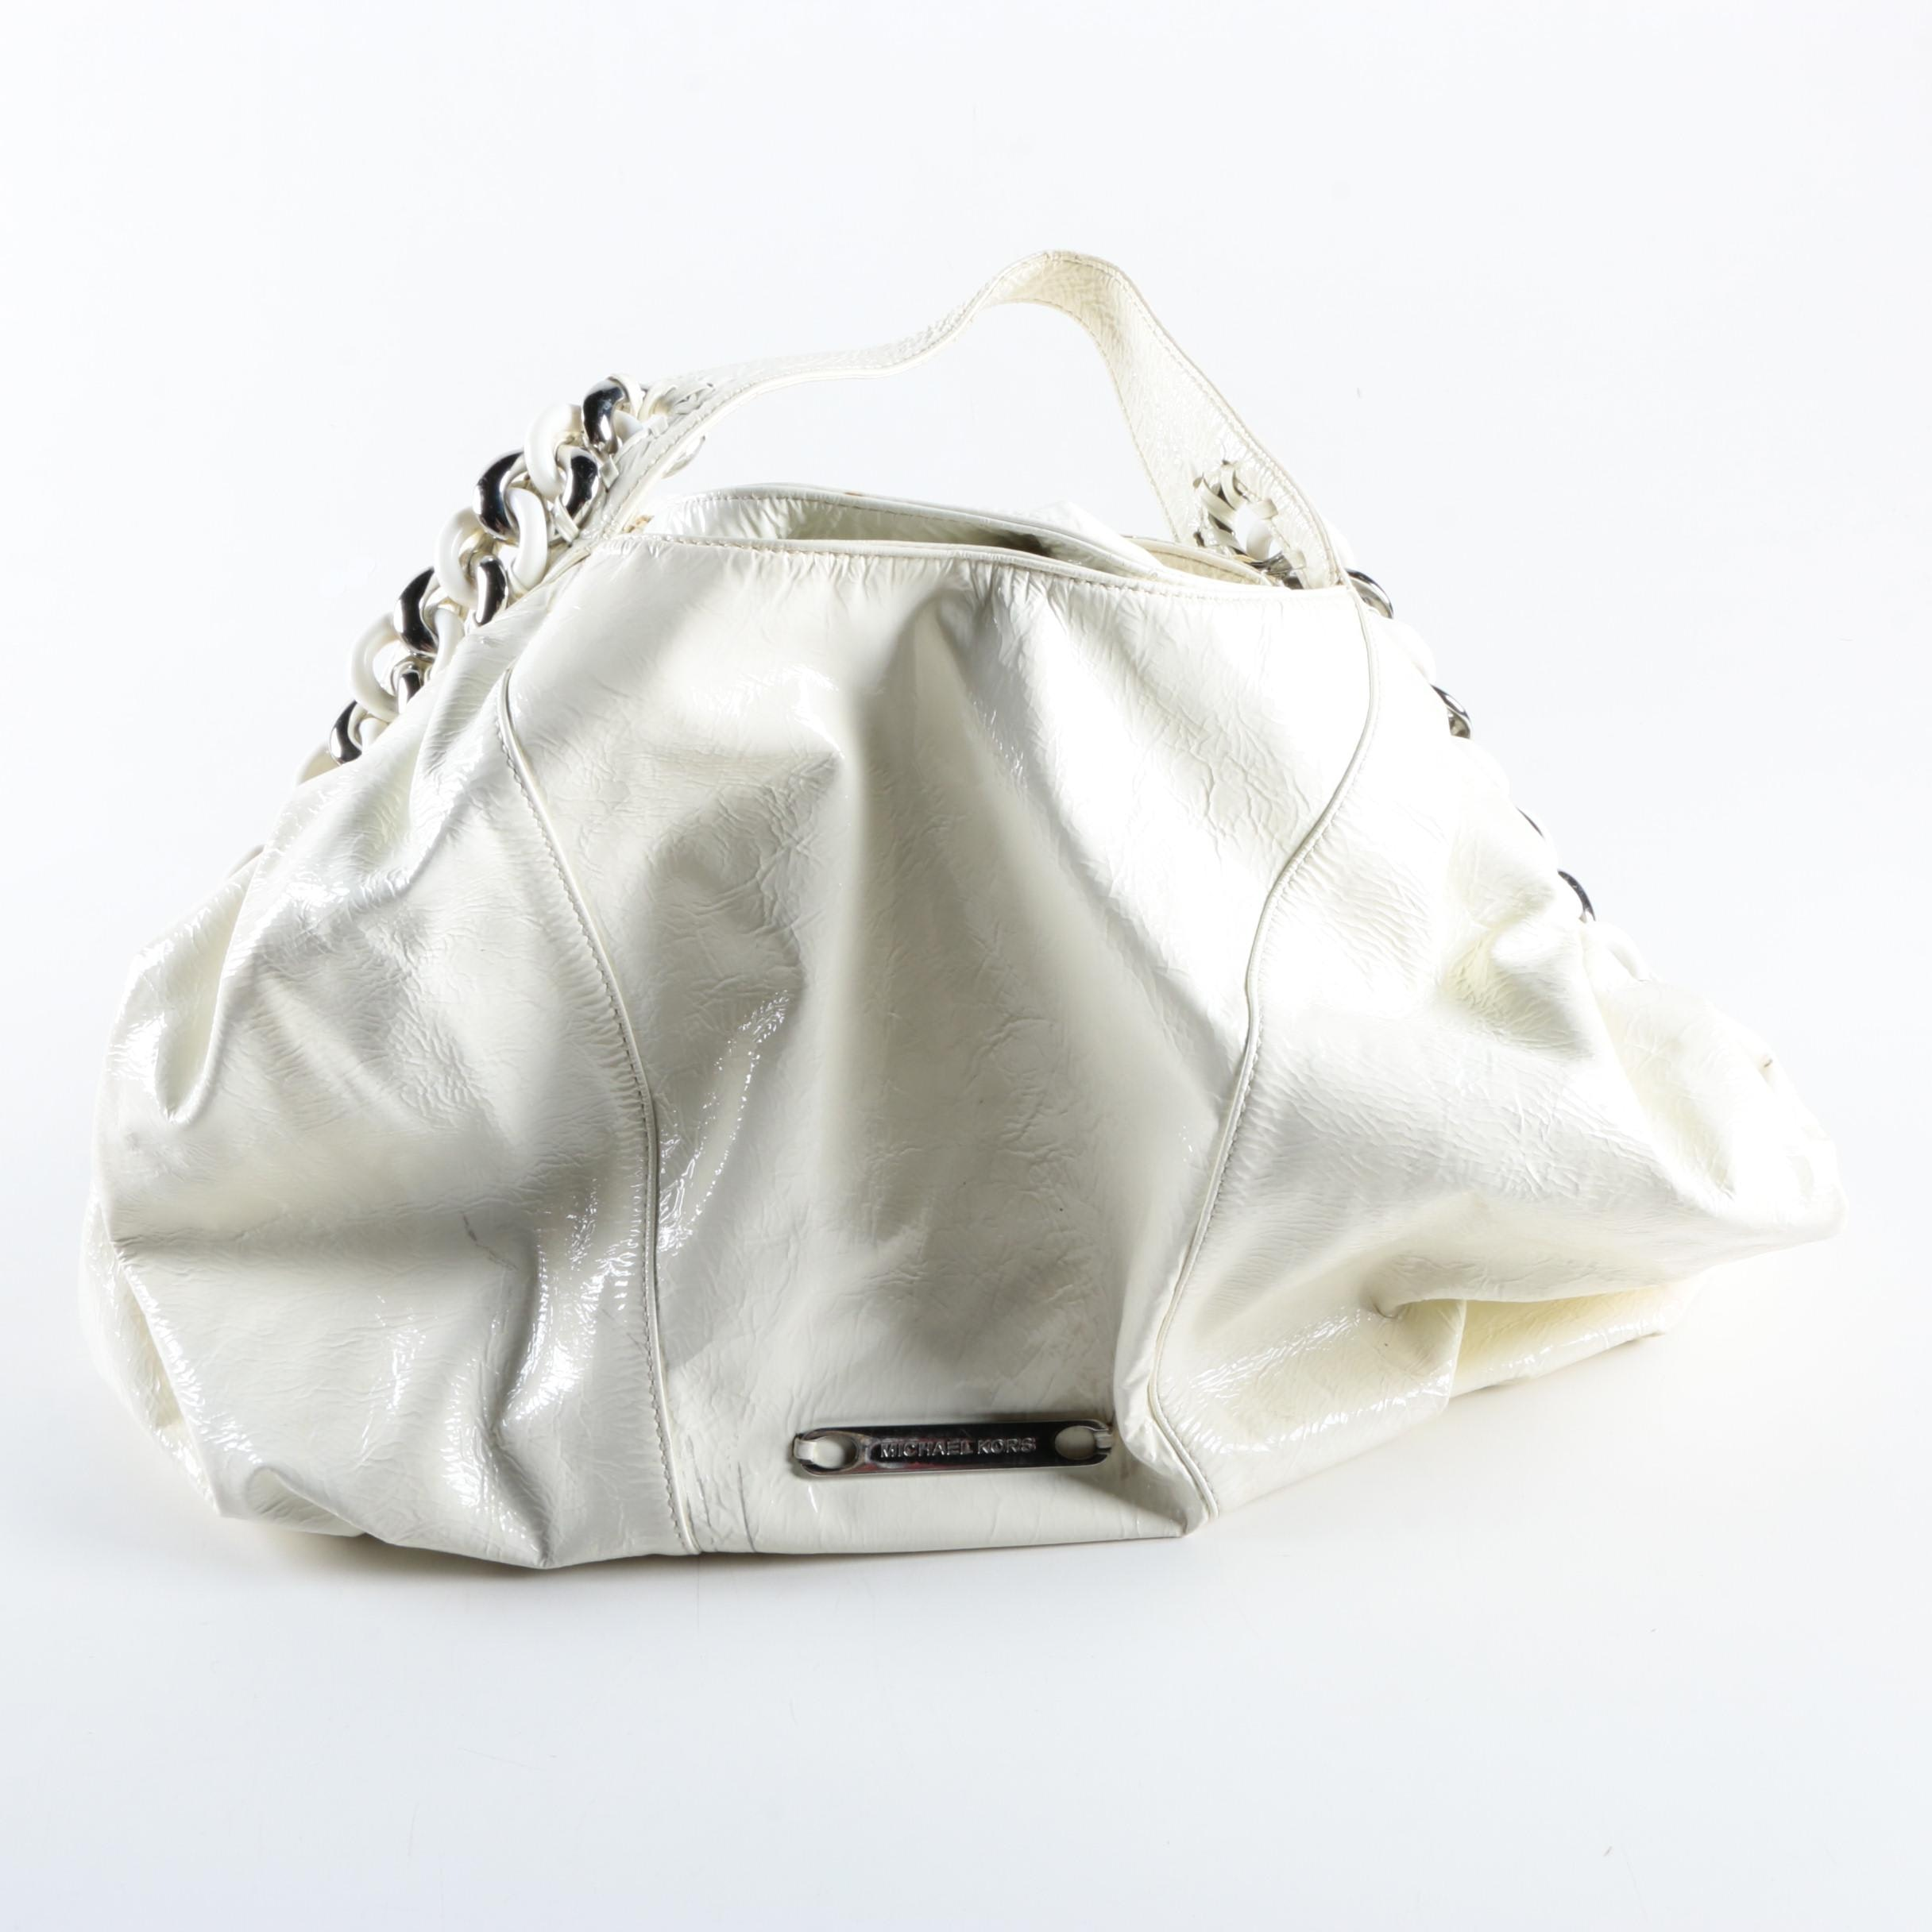 Michael Kors White Leather Hobo Bag